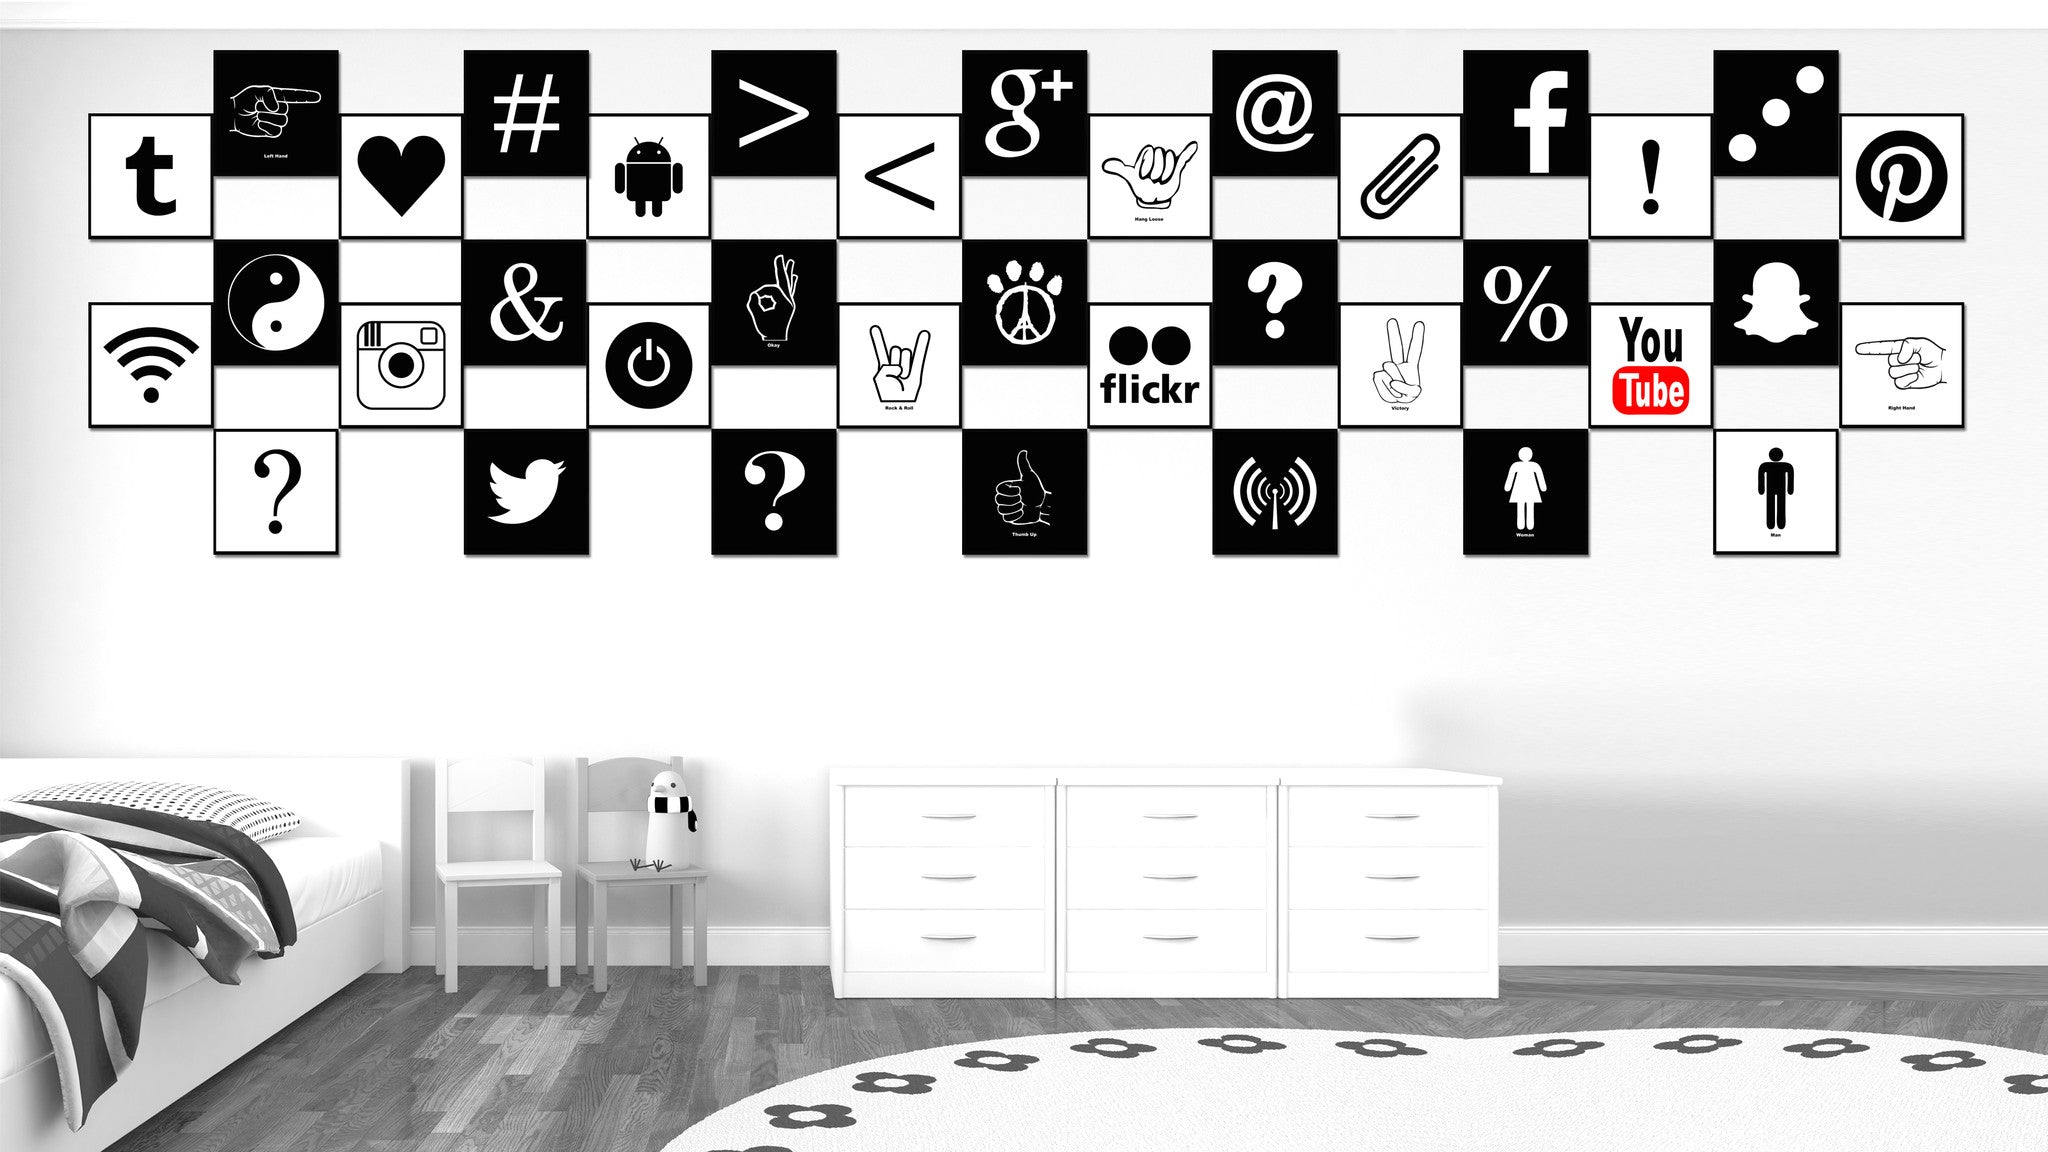 At Sign Social Media Icon Canvas Print Picture Frame Wall Art Home Decor